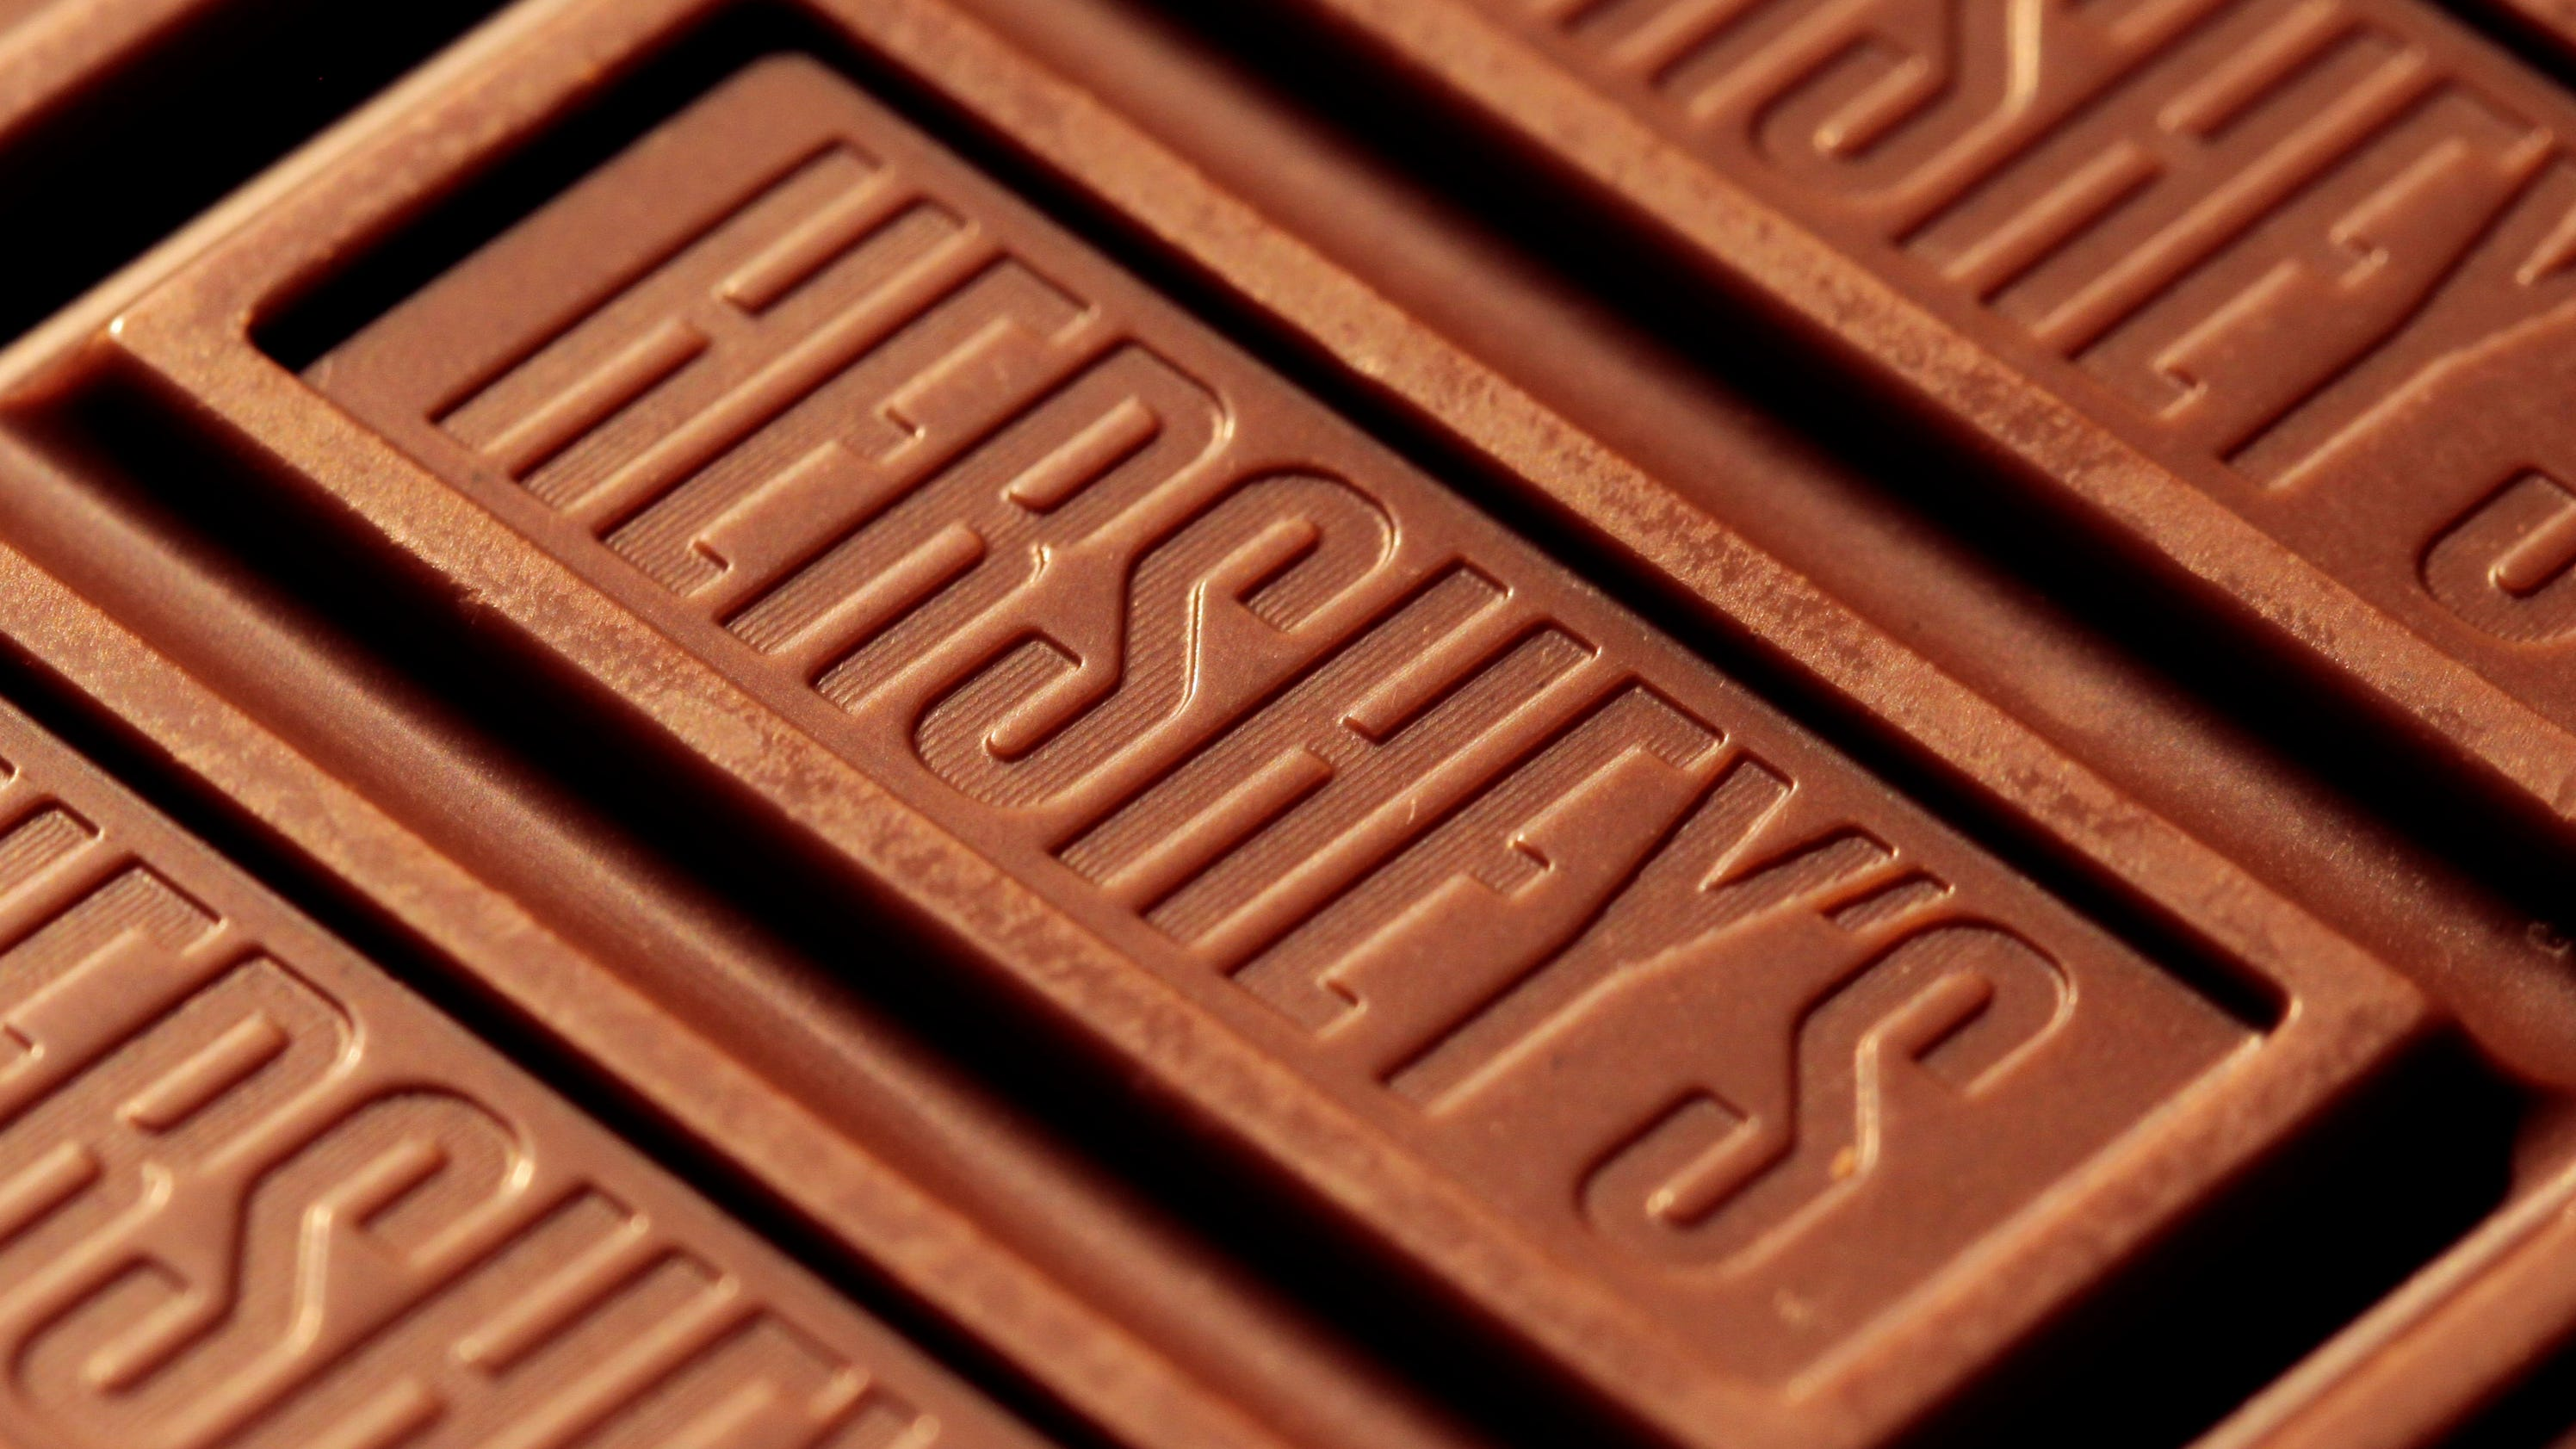 Not so sweet: Chocolate prices are set to rise